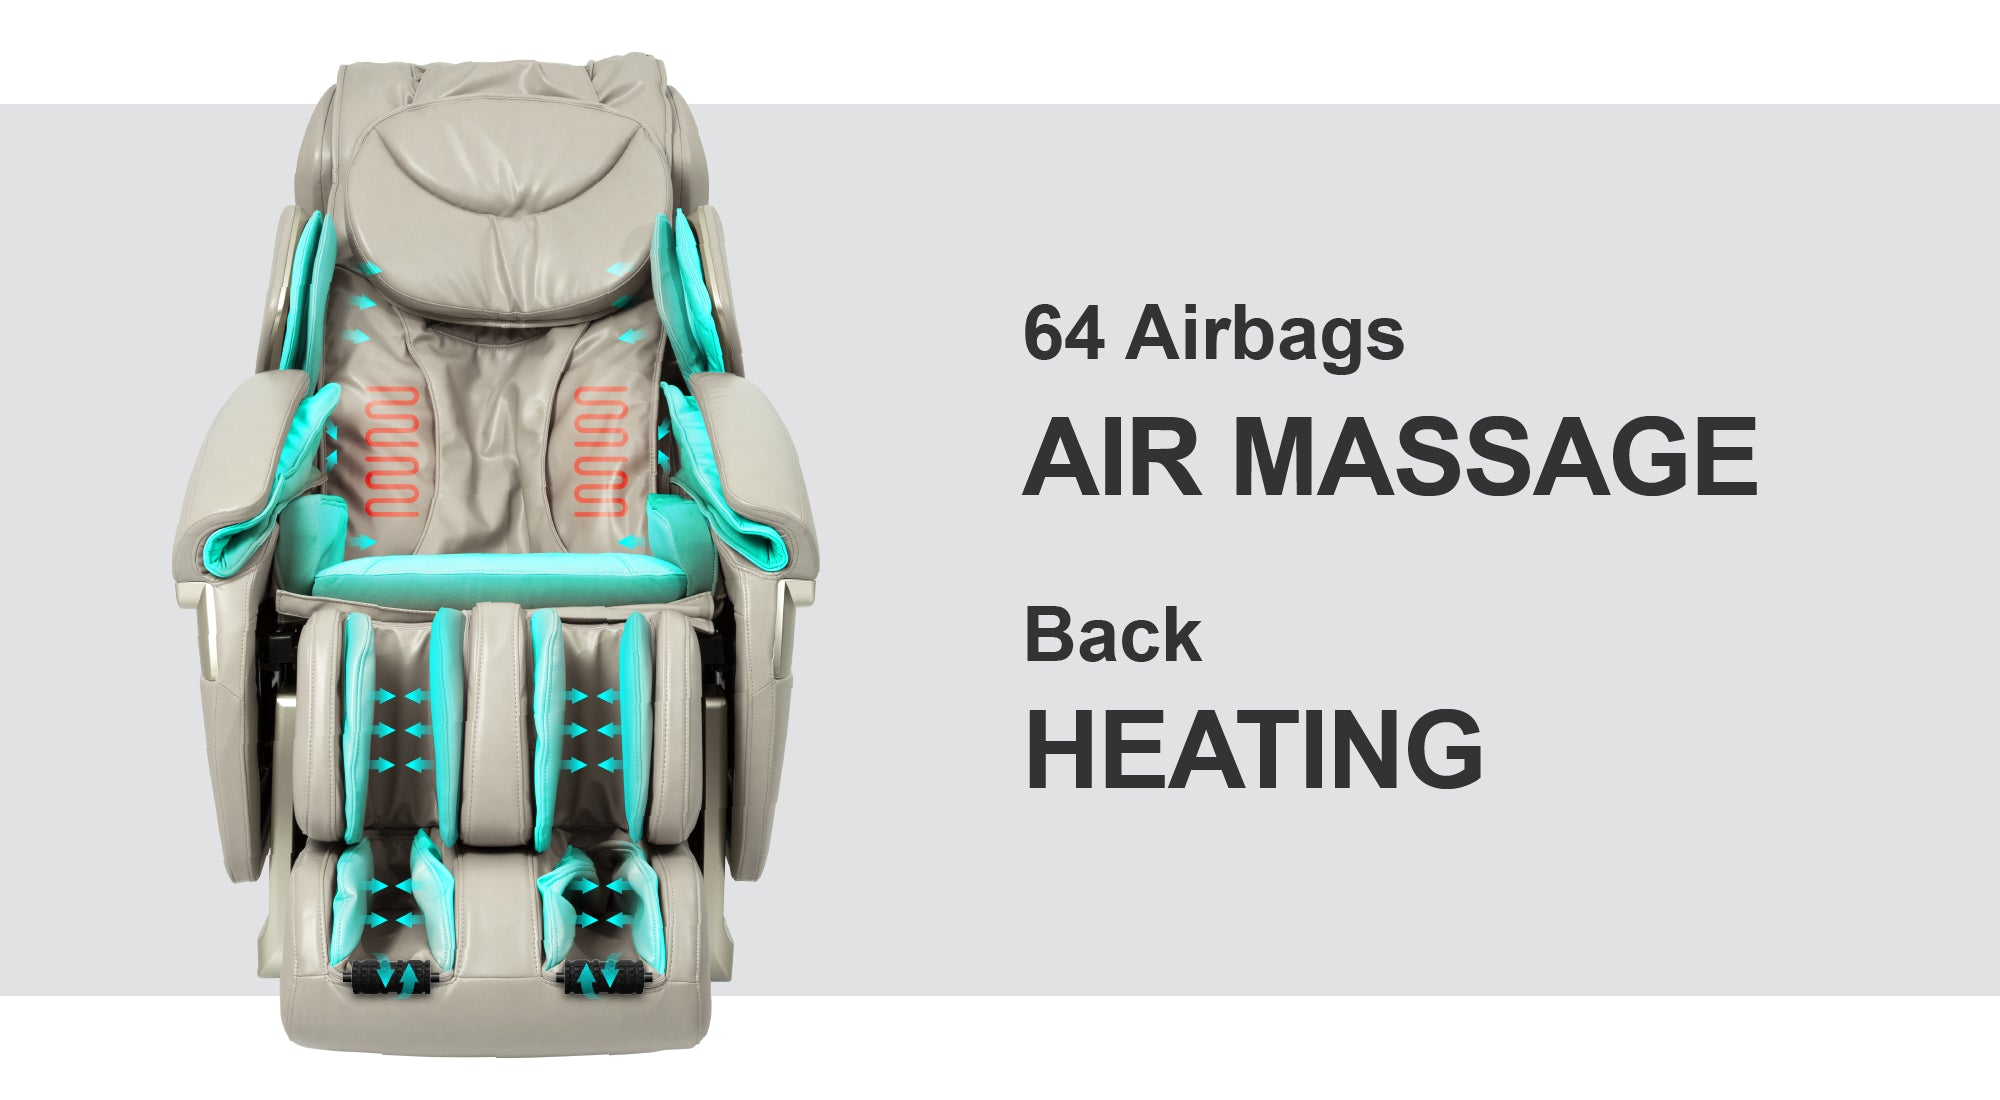 64 Airbags Air Massage, Back Heating